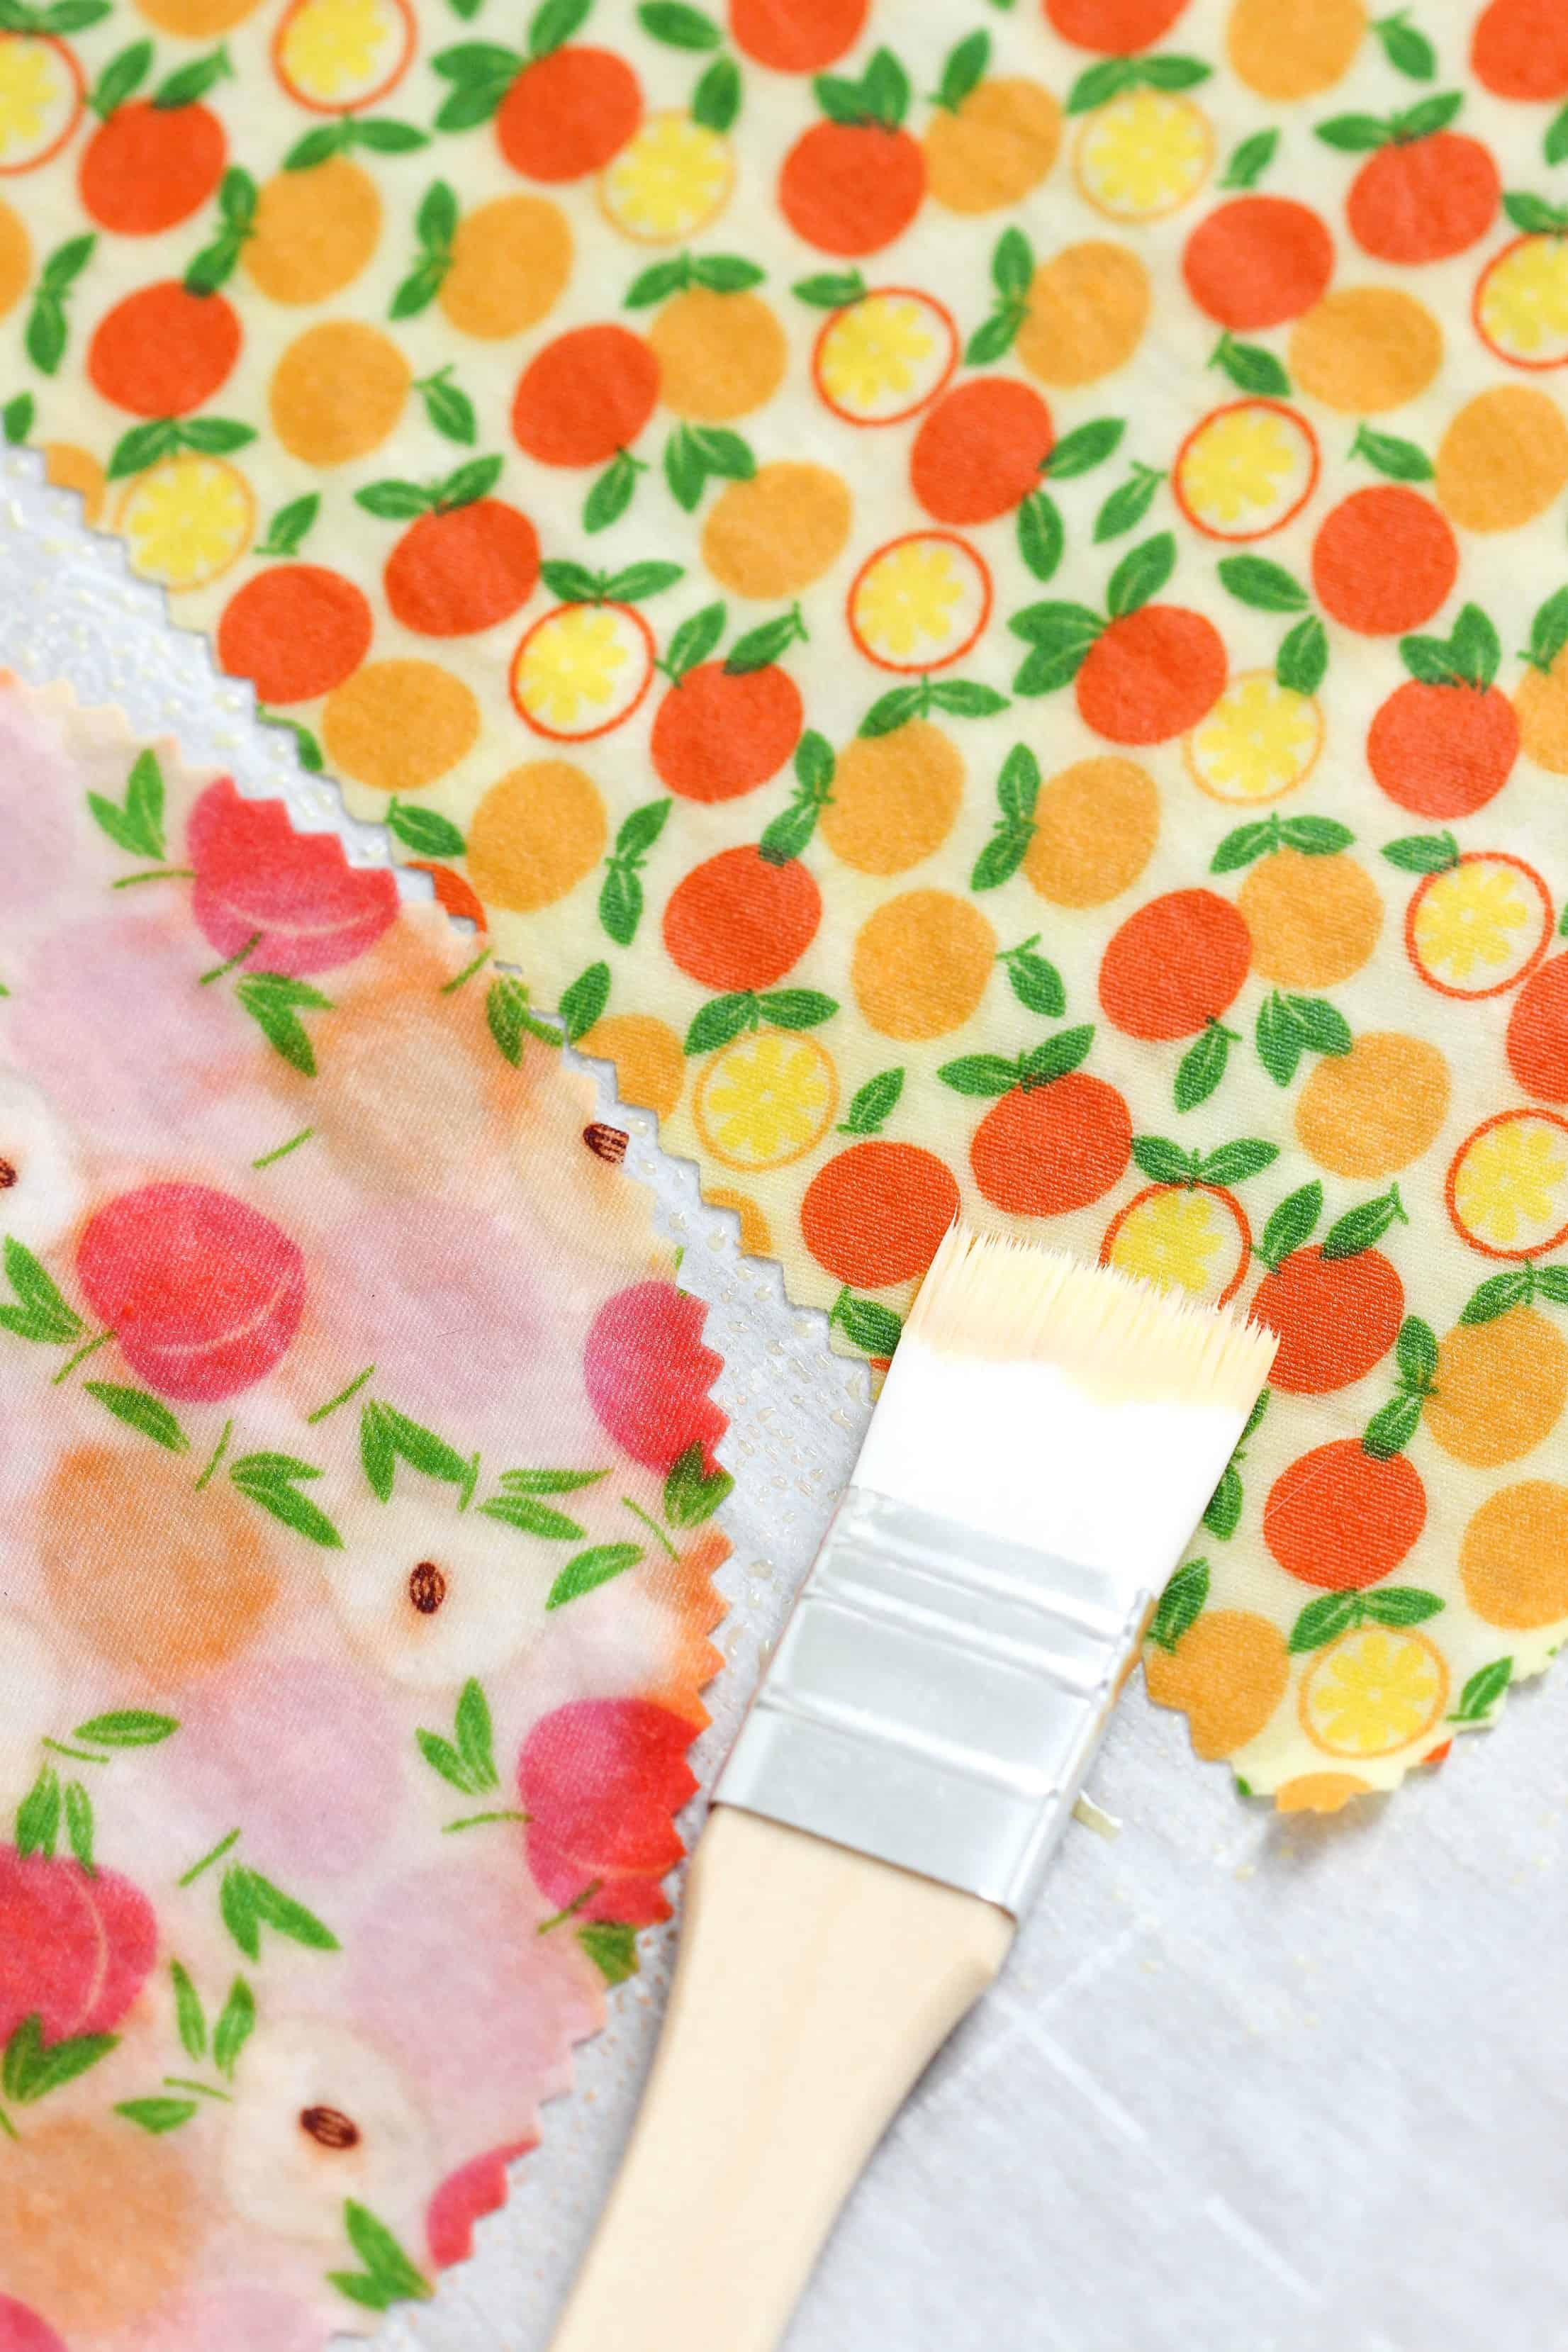 DIY Beeswax Cling Wraps - Purely Katie